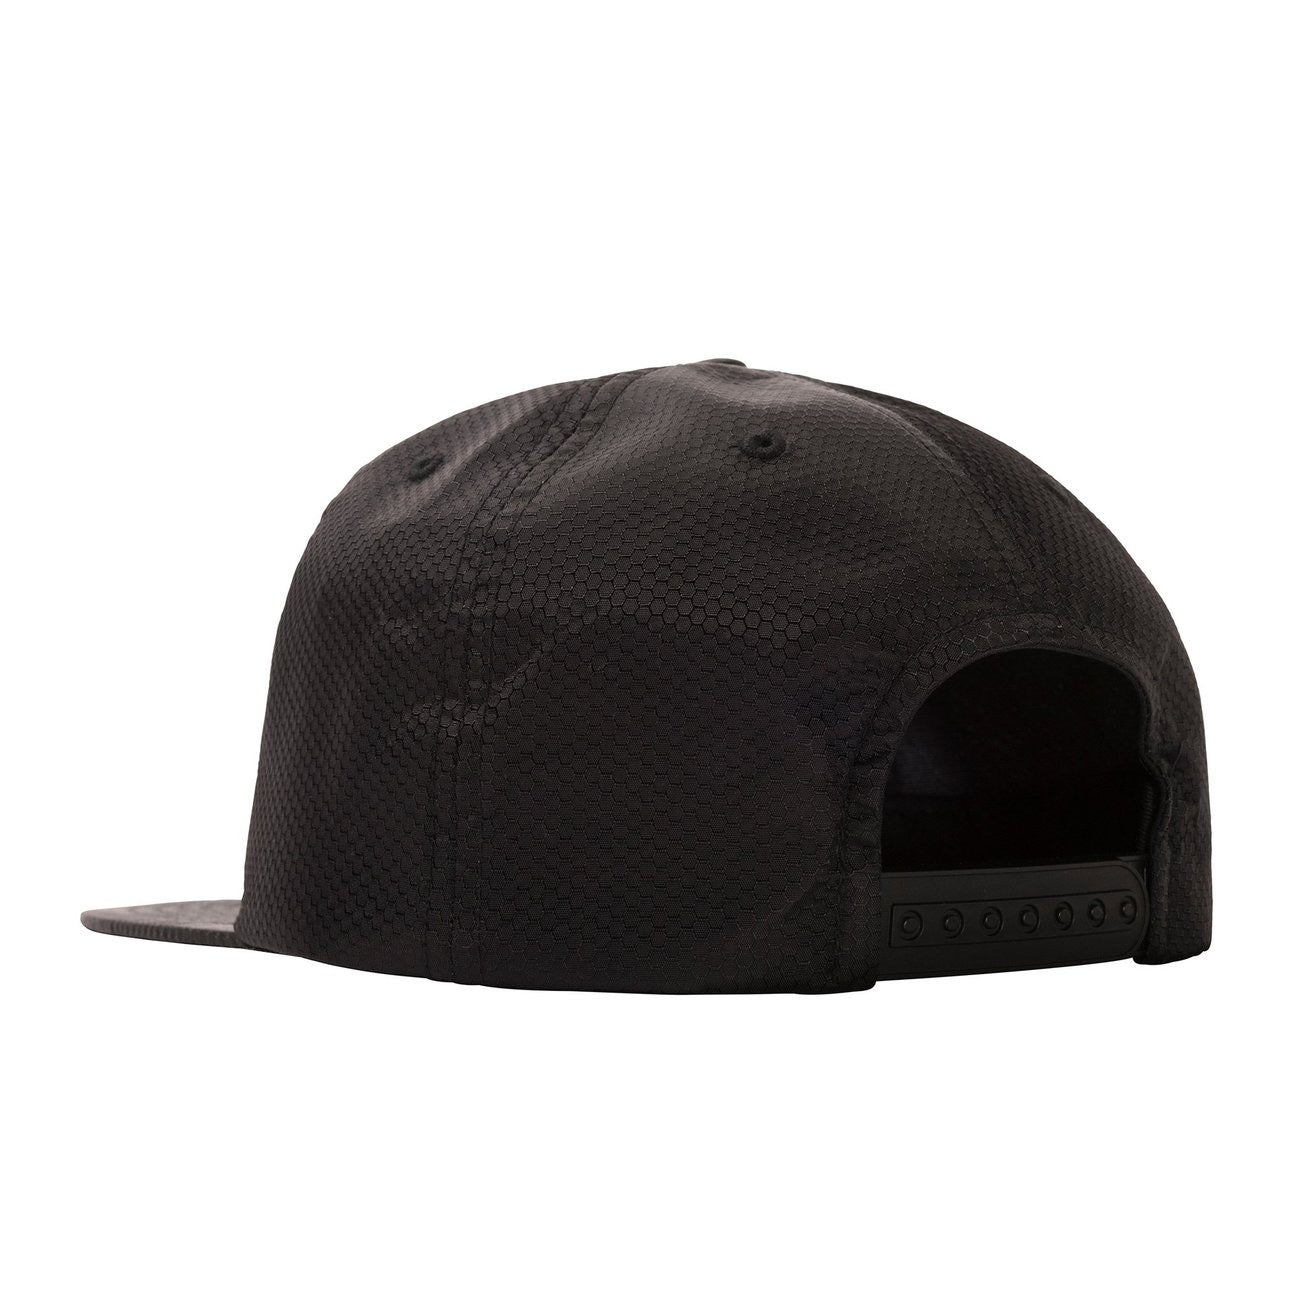 Honeycomb Cap Black